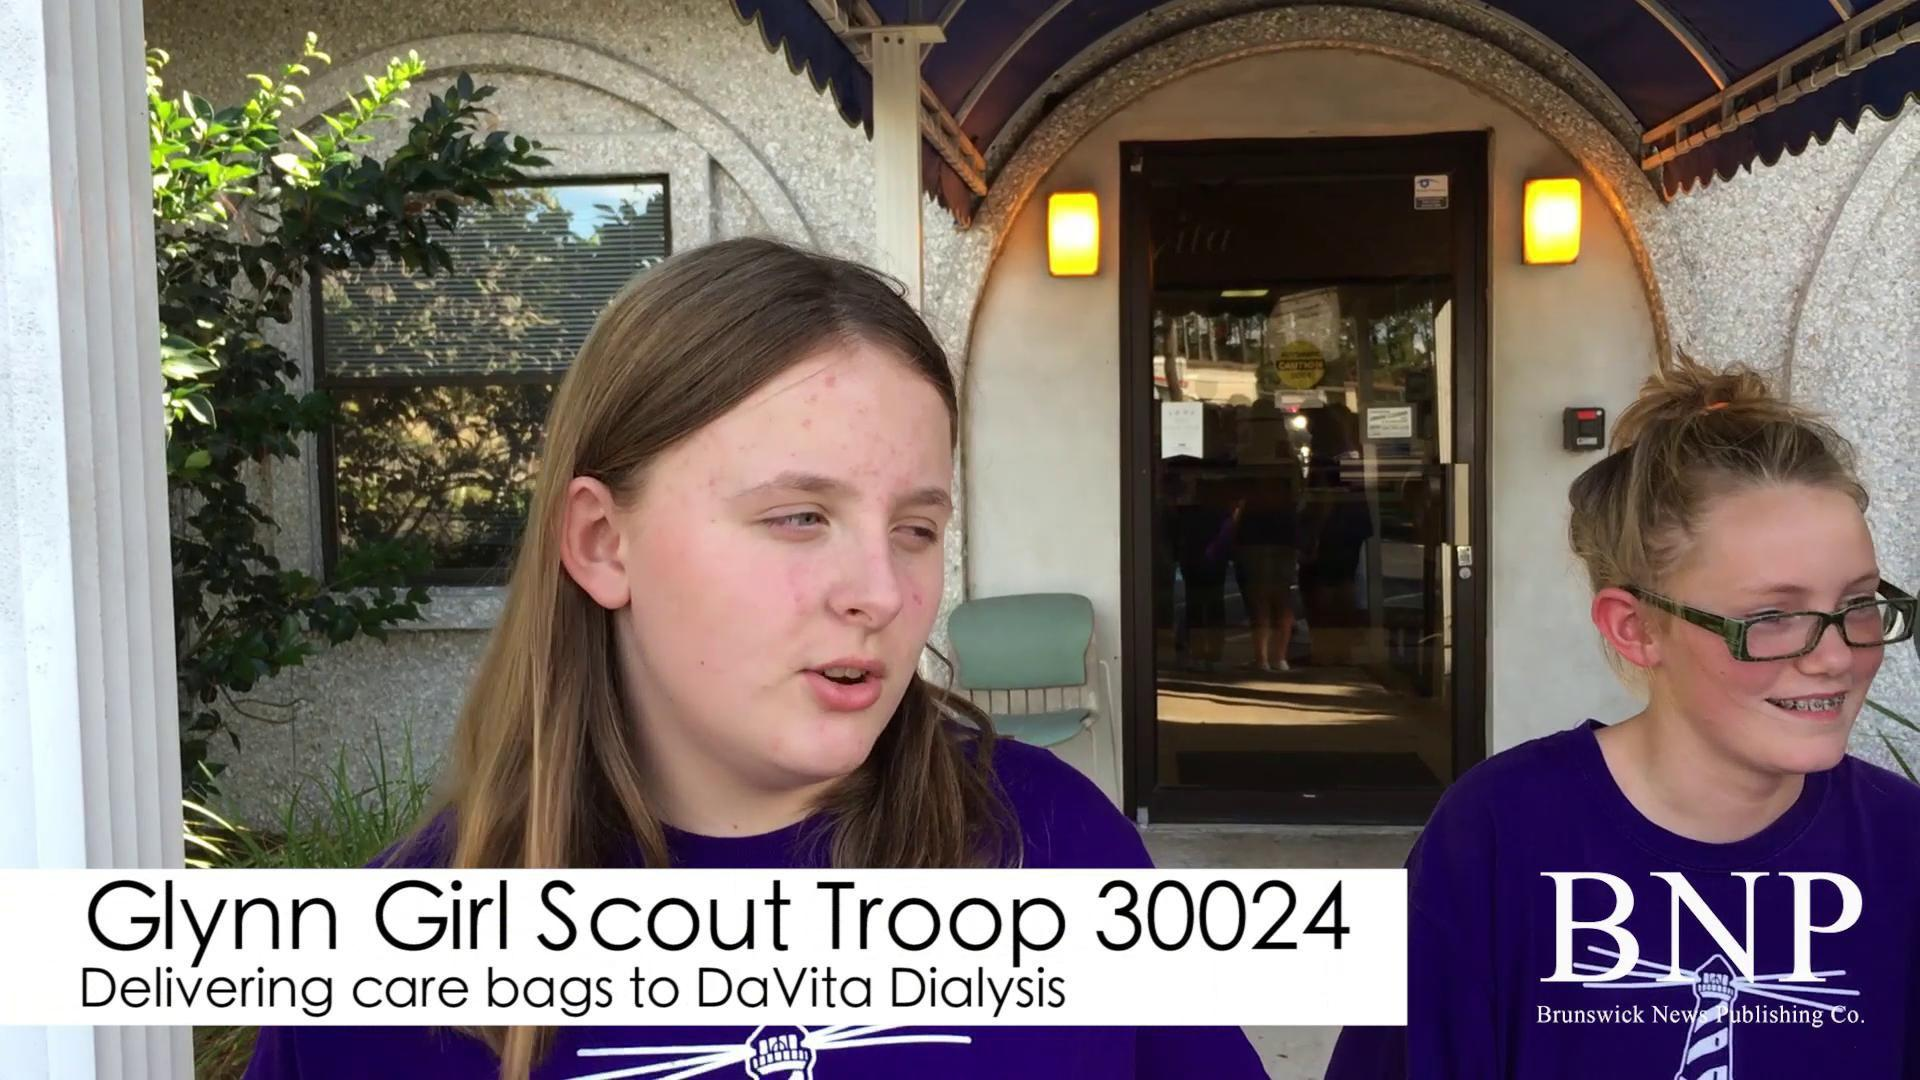 Girl scouts deliver care bags to DaVita Dialysis | | The